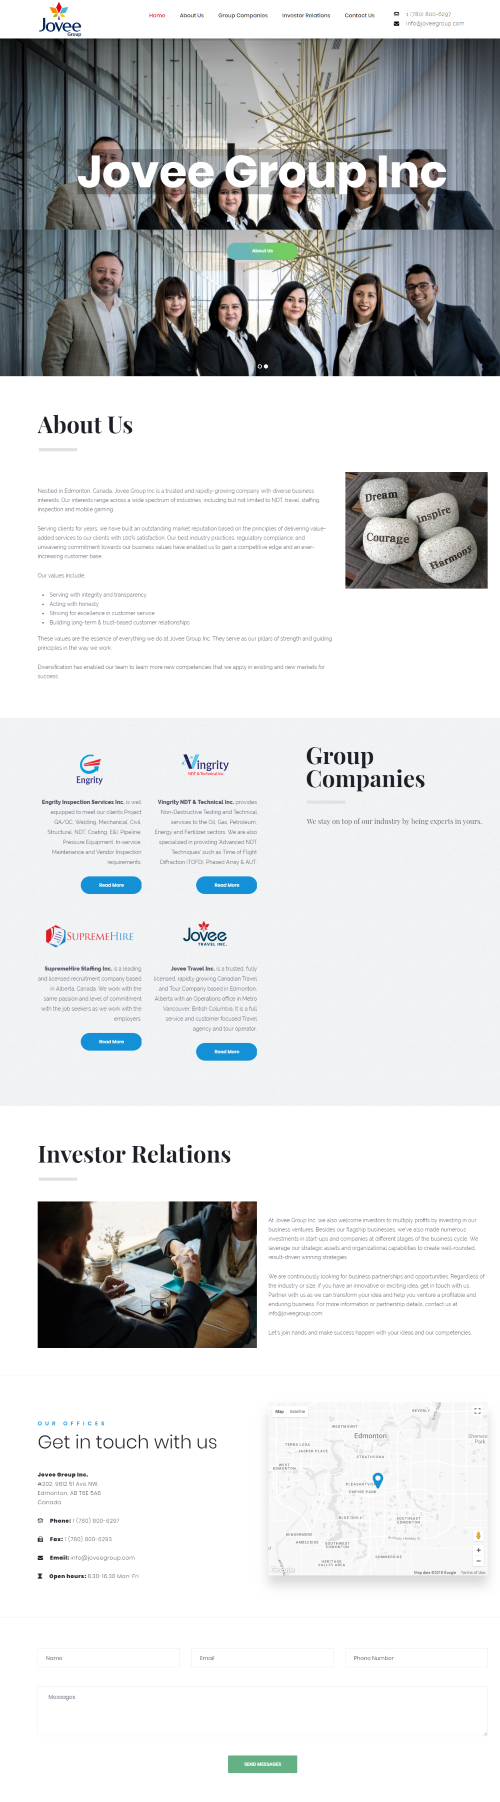 joveegroup.com500